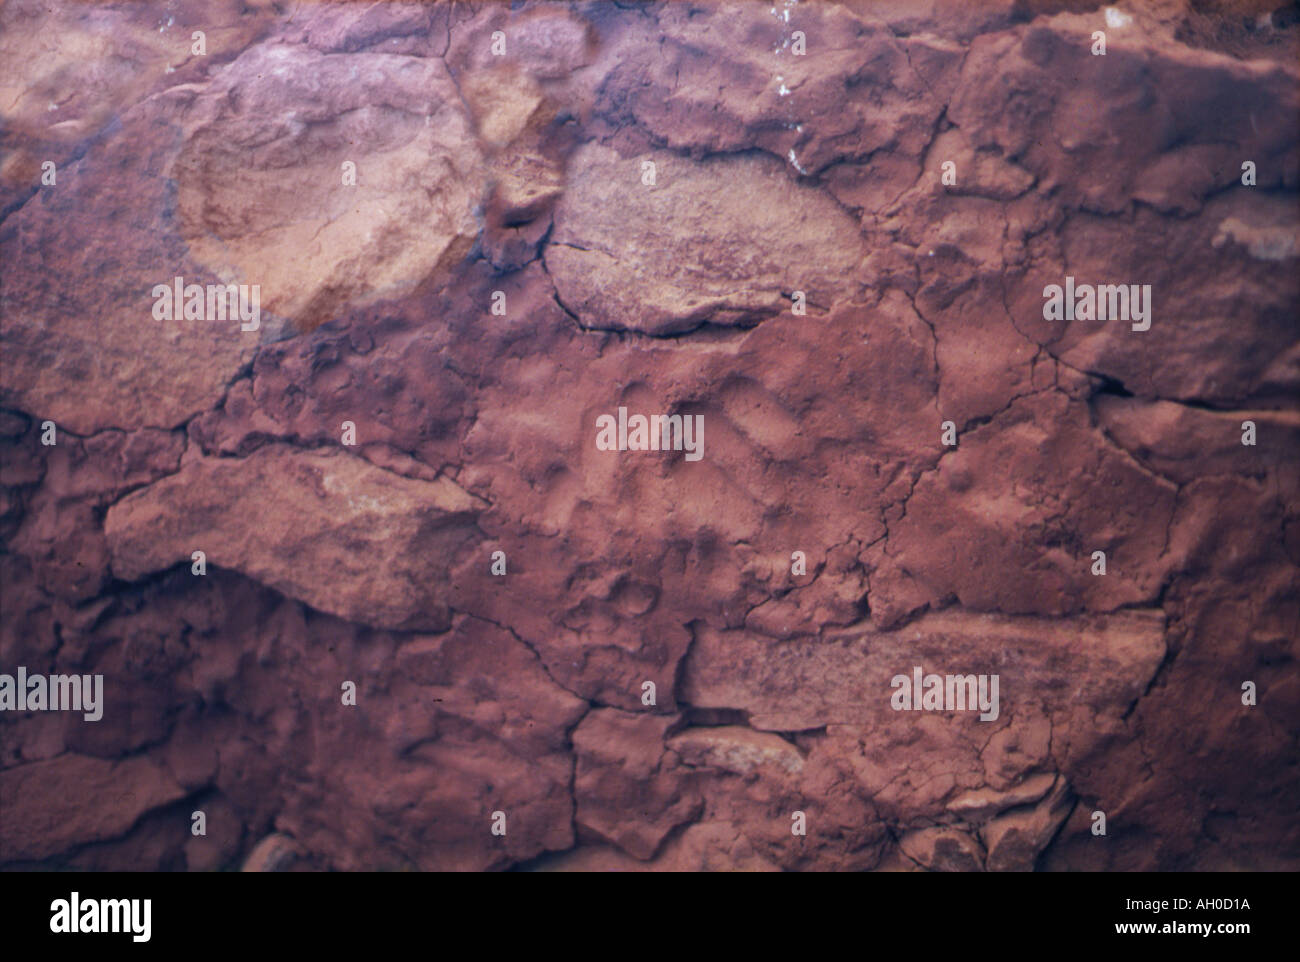 adobe wall in Anasazi cliff dwelling with fingerprints - Stock Image